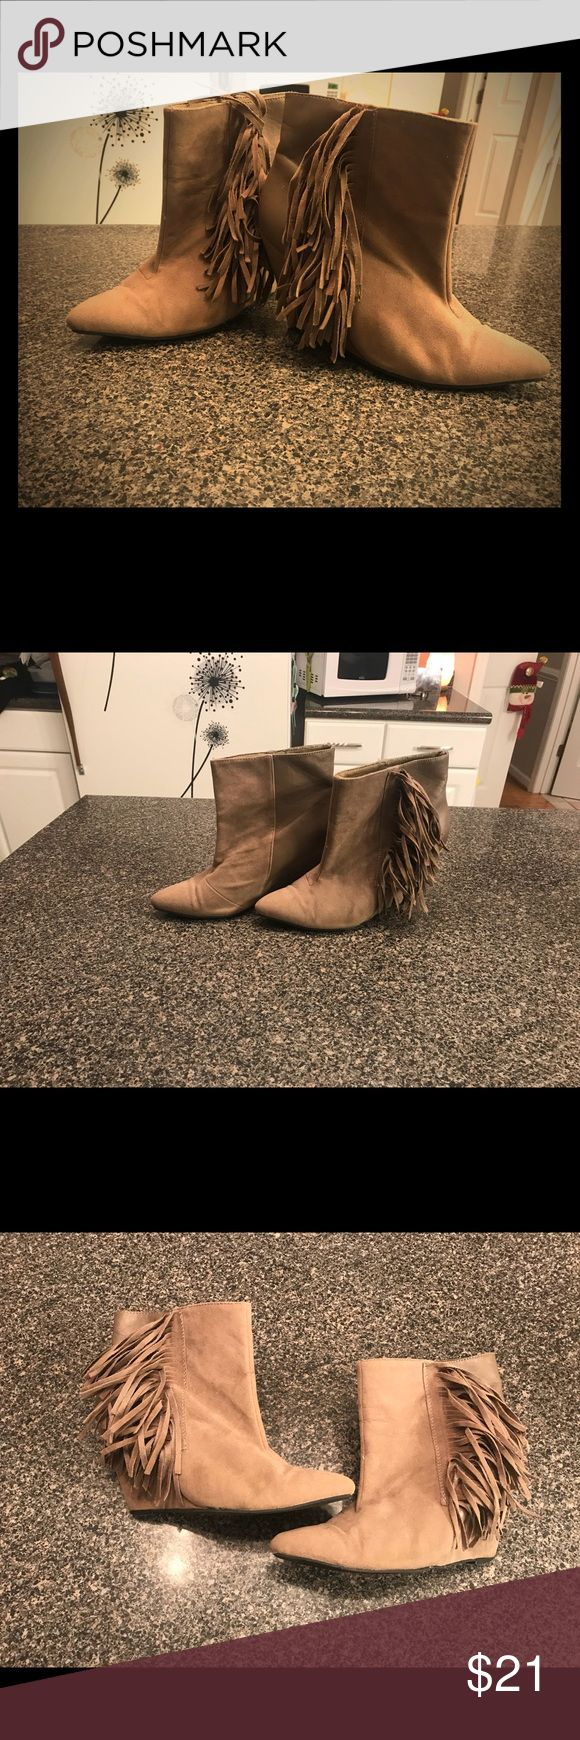 Adorable tan ankle booties Adorable tan ankle booties - tan ankle booties with fringe details on the side & pointed toe- small scuff on one shoe- I used some shoe polish to repair so not noticeable while wearing Shoes Ankle Boots & Booties